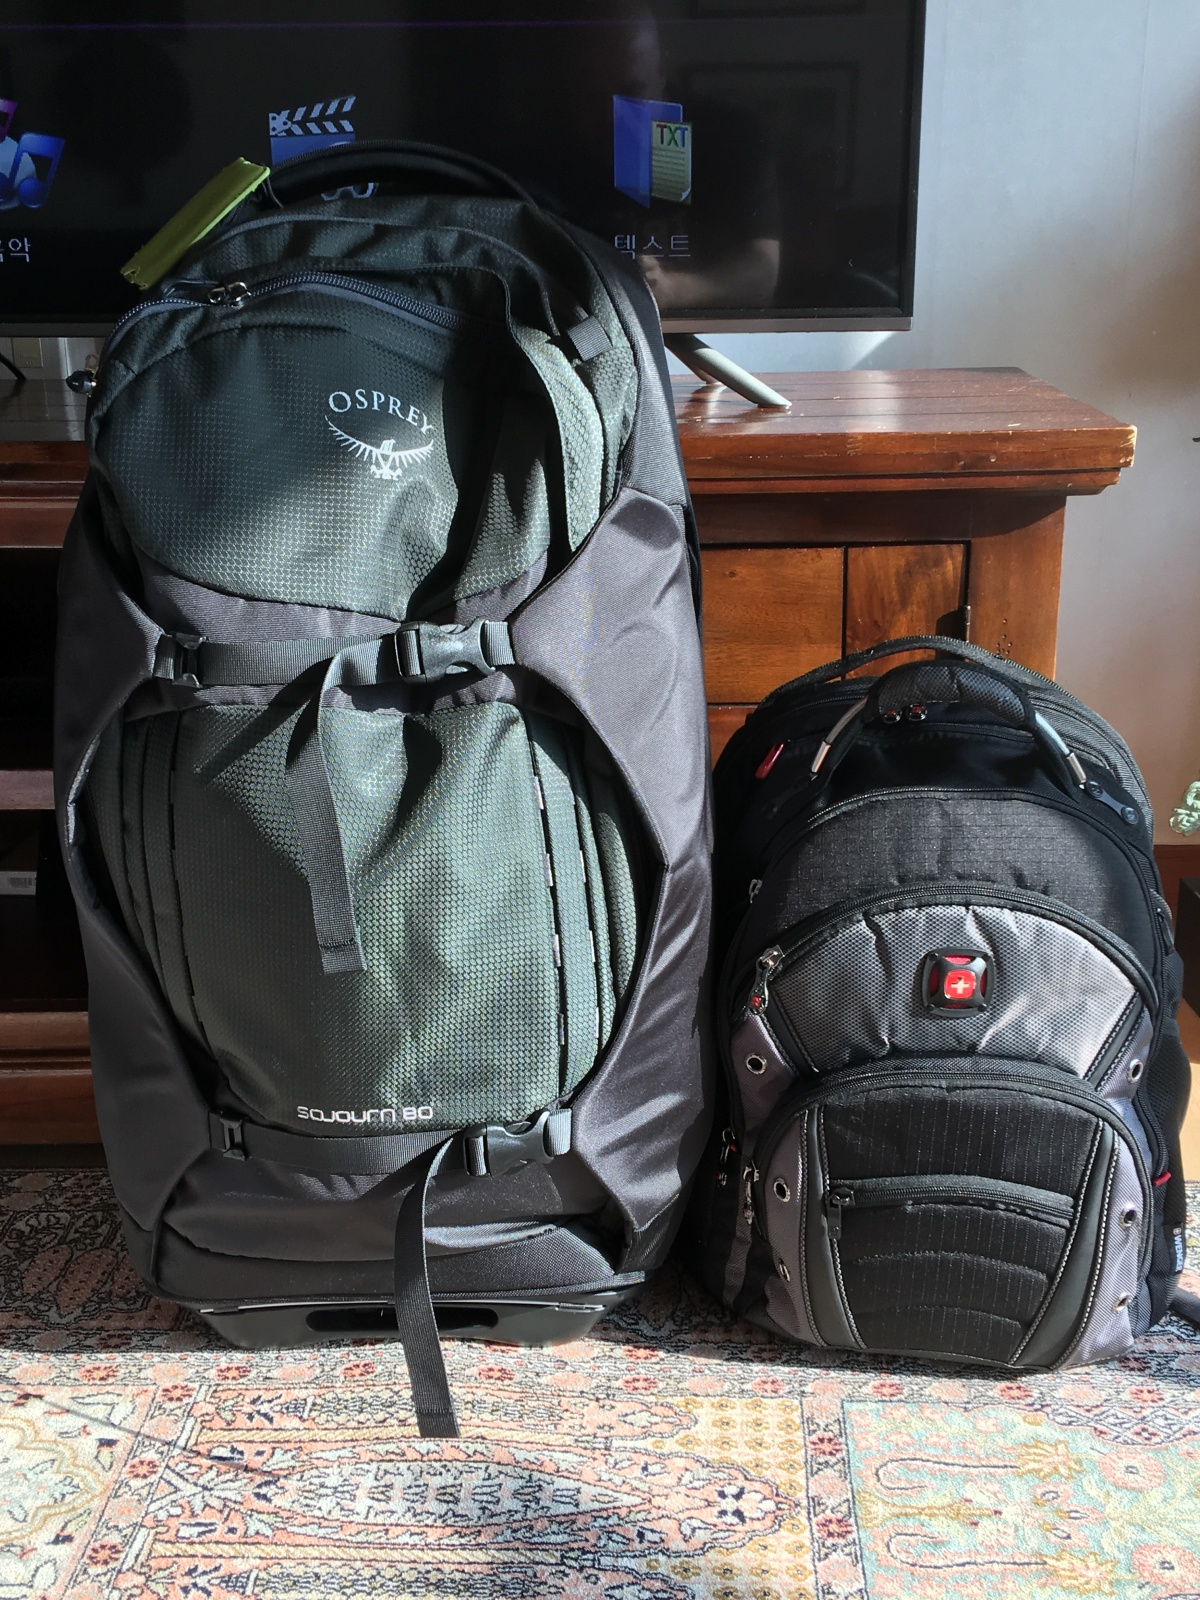 The Travel Gear Diaries: Part 1-Backpacks for an Around the World Trip